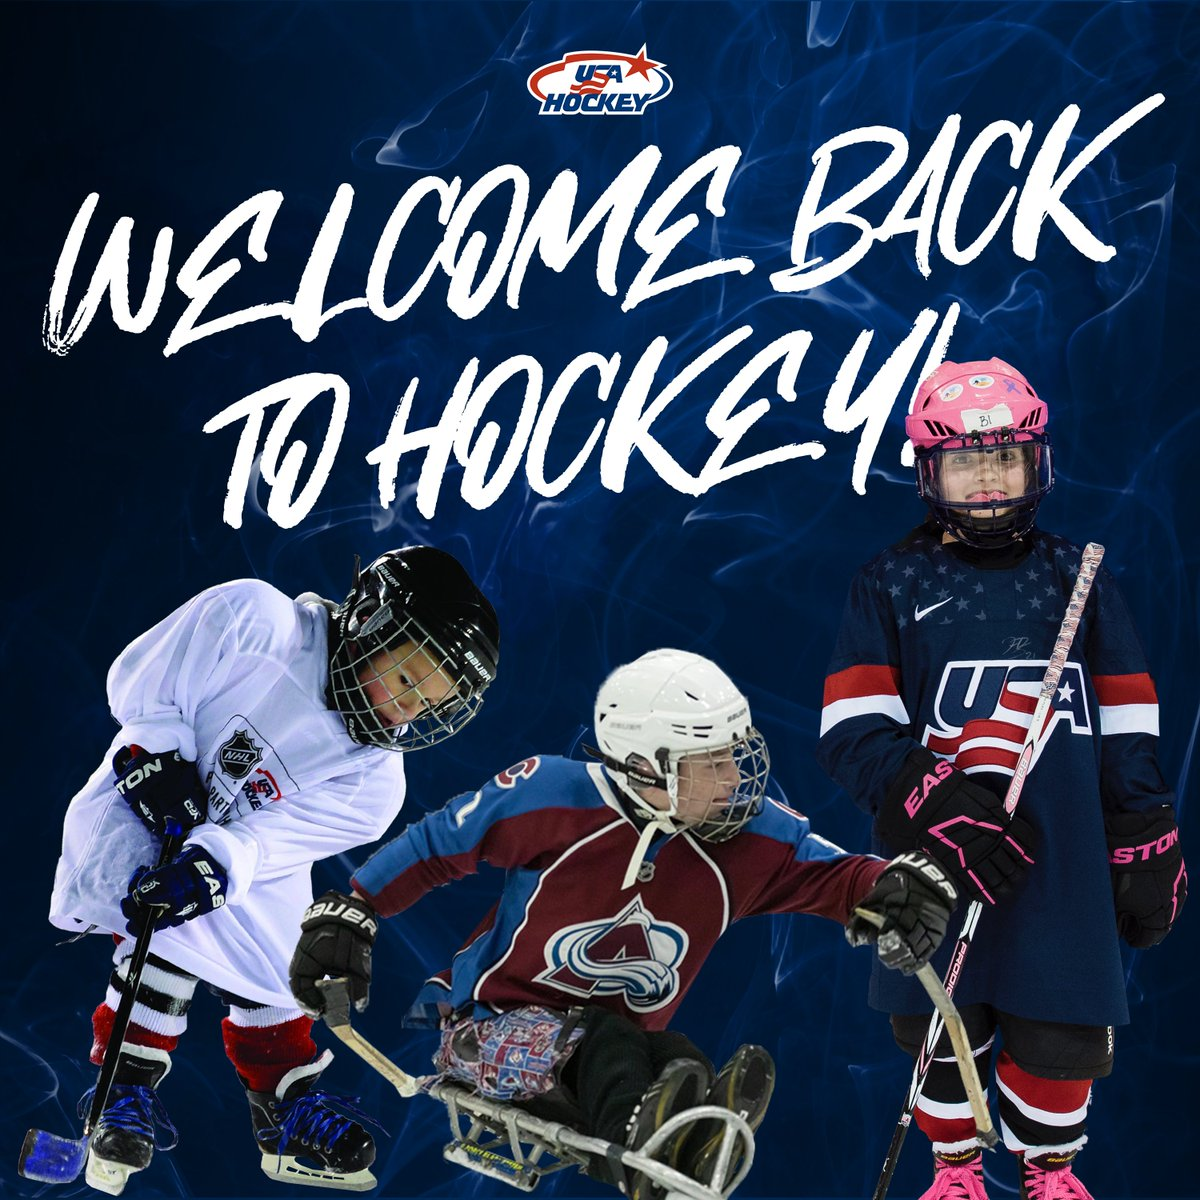 Let's make this the best season yet. 🏒 Welcome #BackToHockey, friends! → bit.ly/2kmW7cP